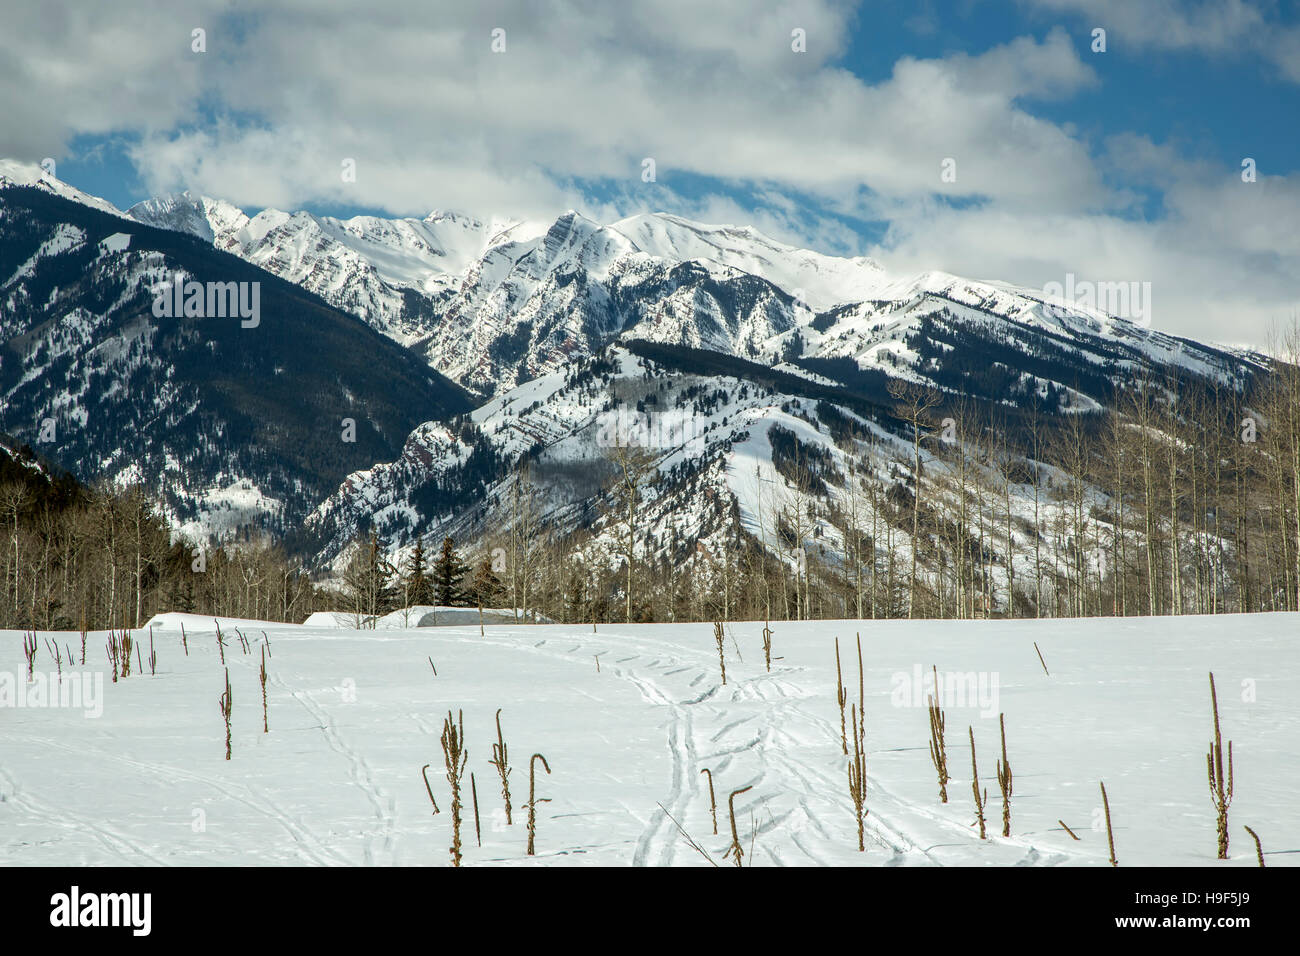 Ski tracks on snow, snow-covered mountains in background, trail to Benedict Huts, near Aspen, Colorado USA - Stock Image